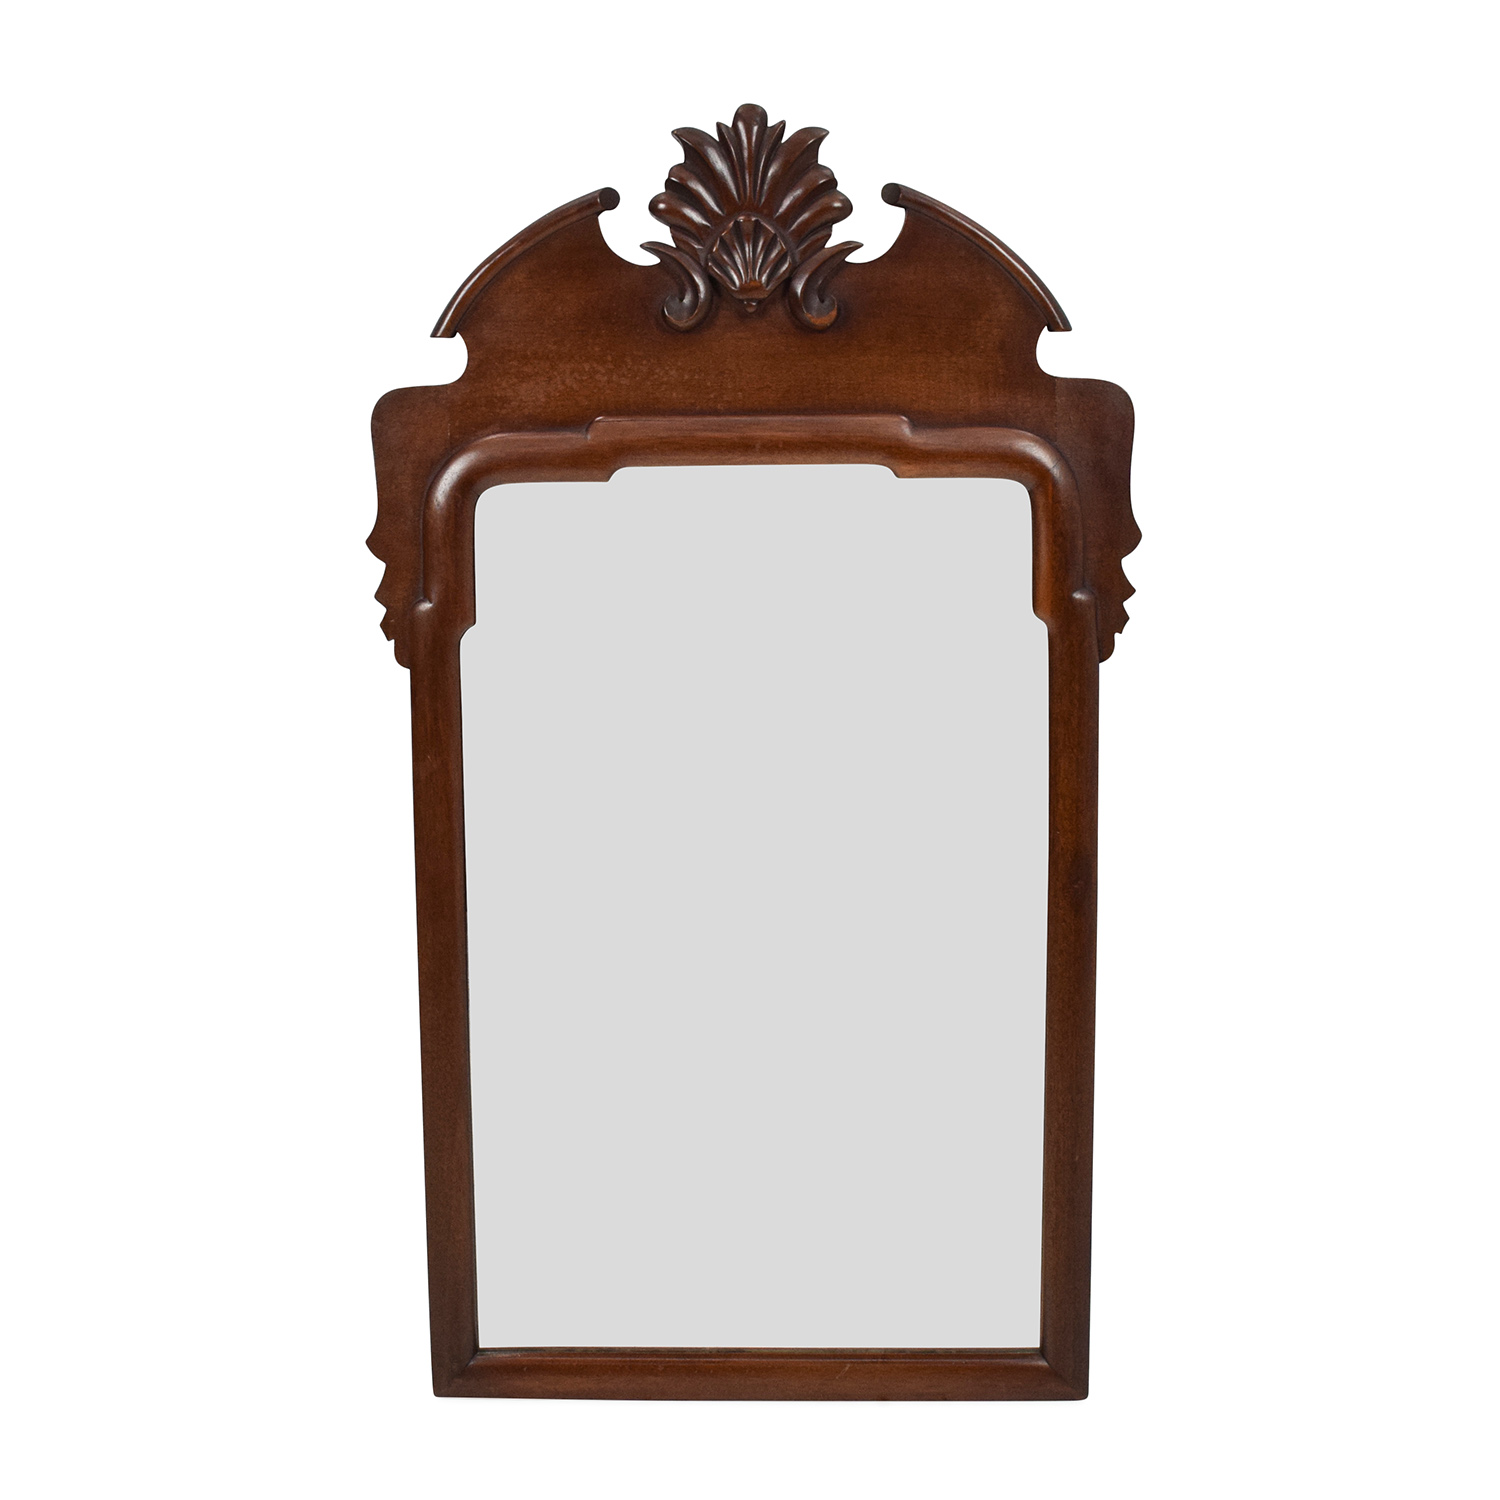 69% OFF - Unknown Brand Antique Wood Frame Mirror / Decor